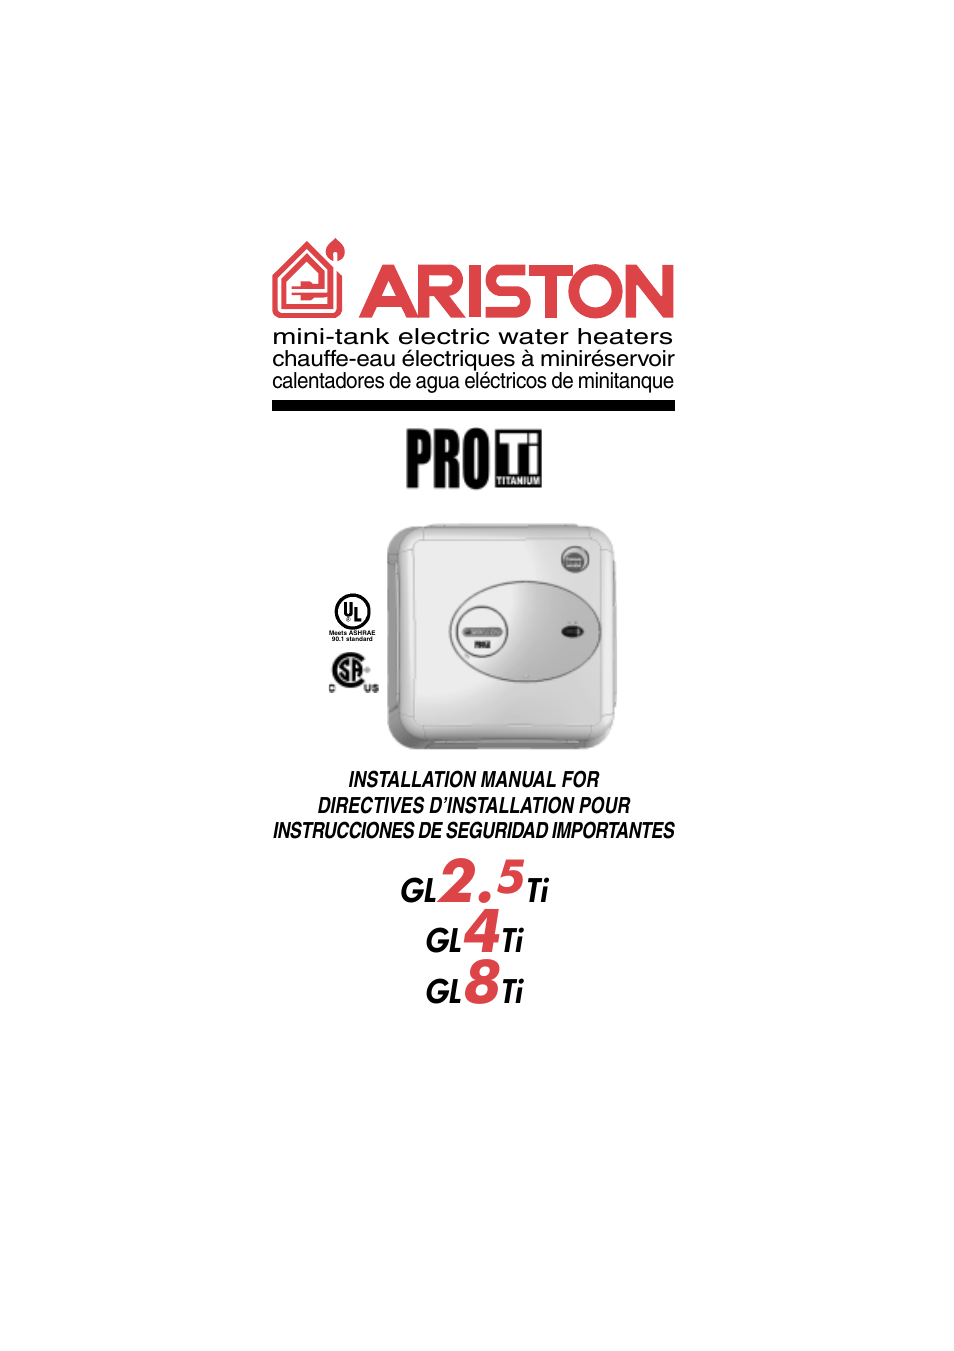 Ariston gl 4 ti user manual 13 pages also for gl 8 ti for Manuale ariston